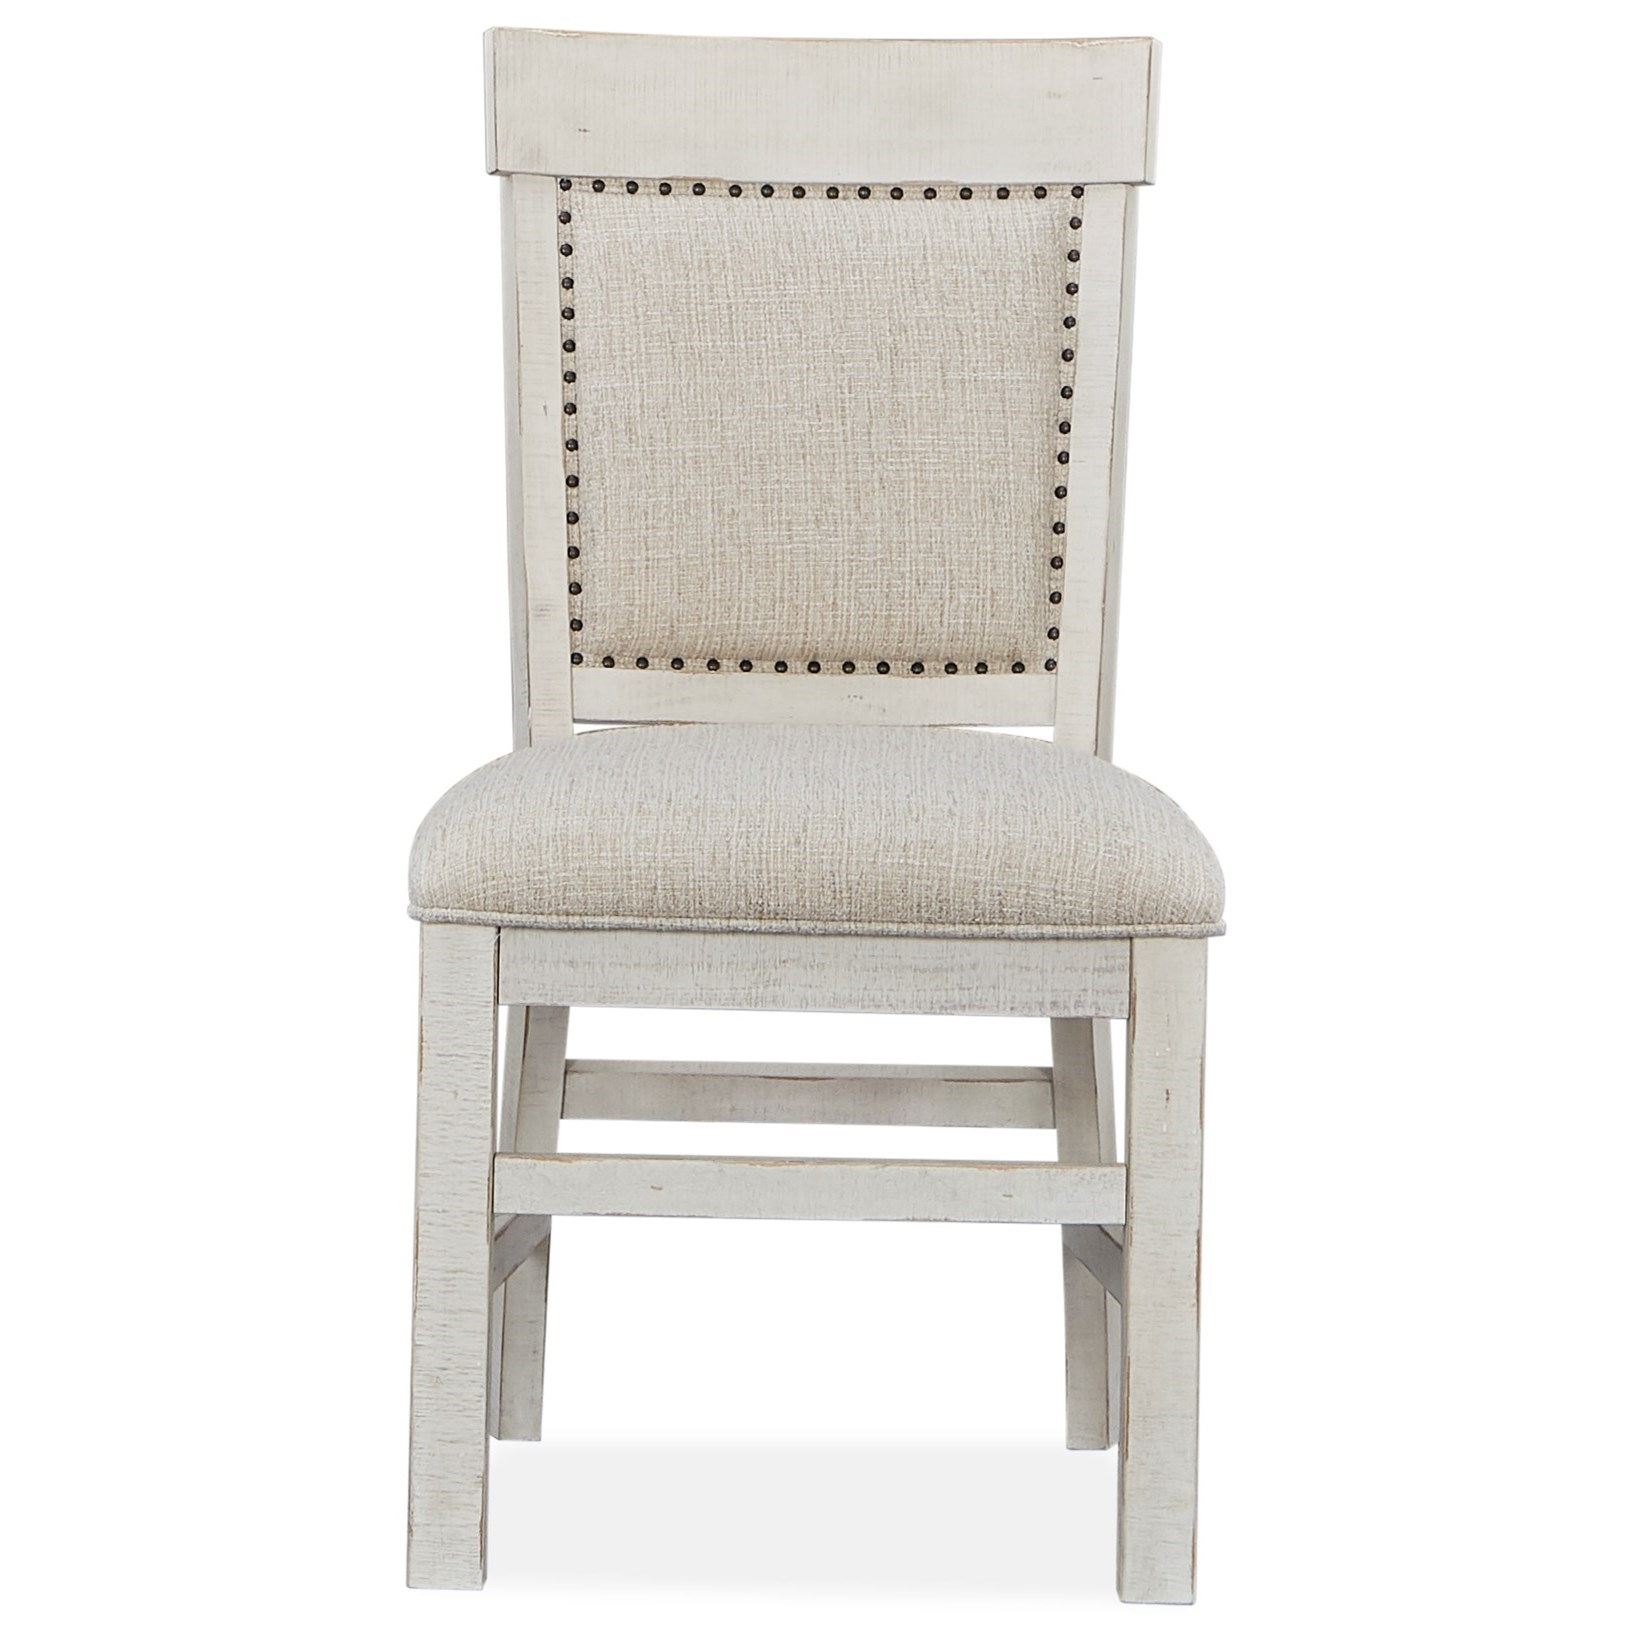 Bronwyn Upholstered Dining Side Chair by Magnussen Home at Stoney Creek Furniture